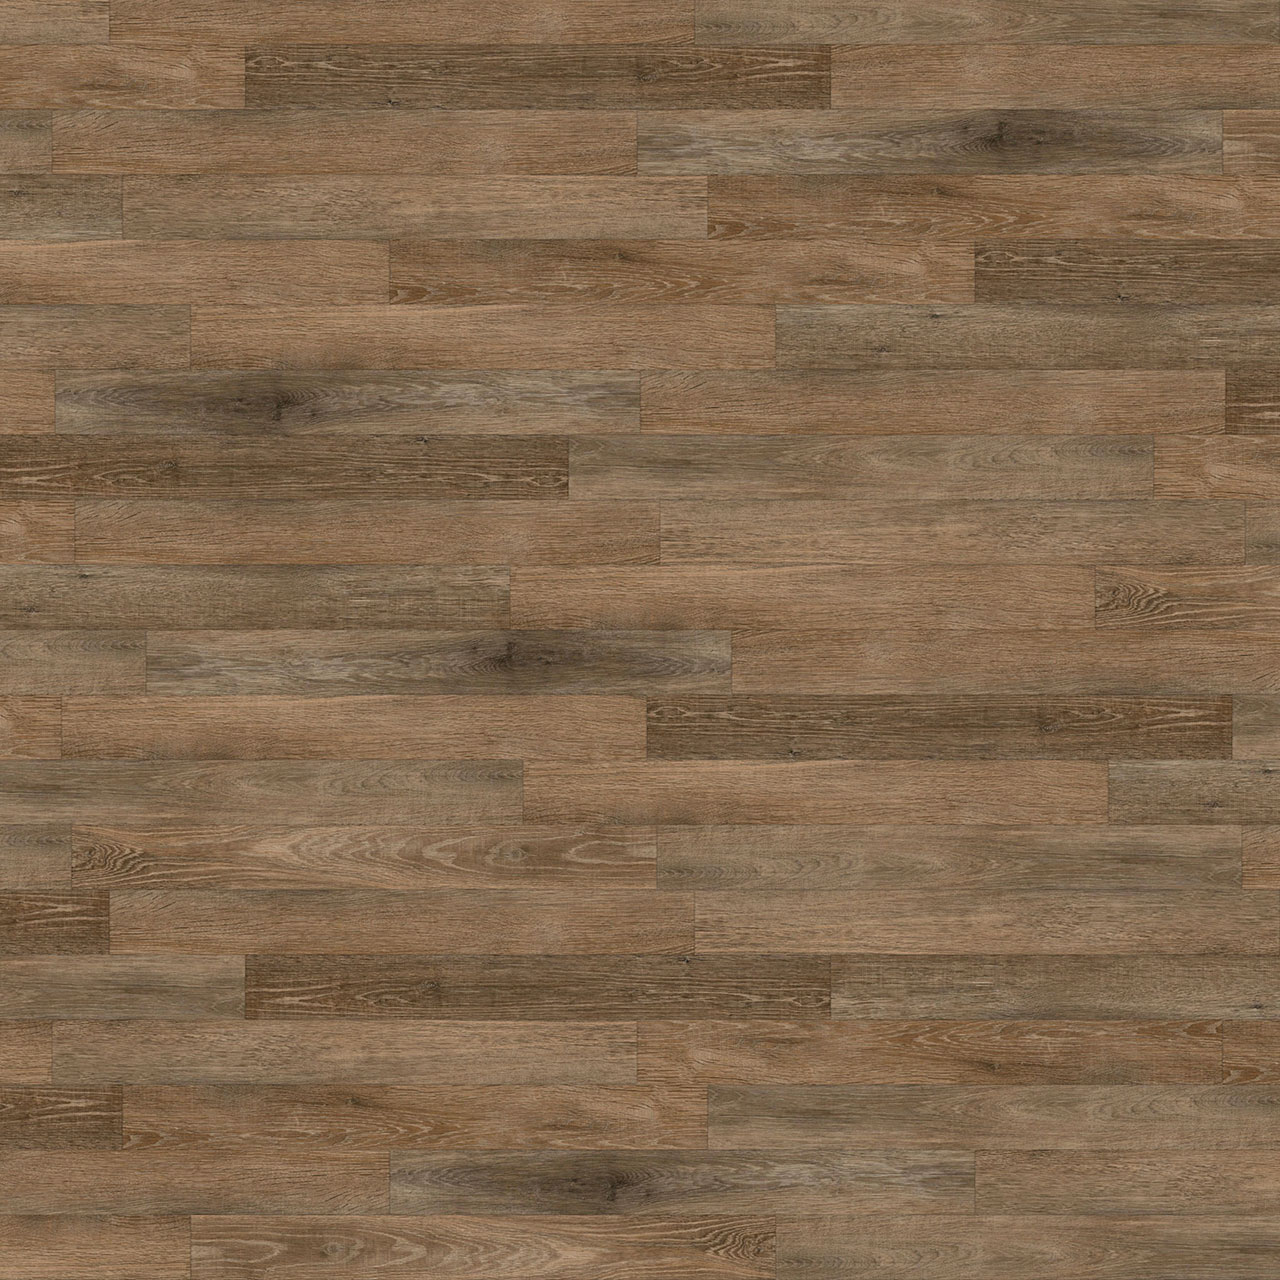 Noble Oak (SS5W3030) in Stripwood laying pattern